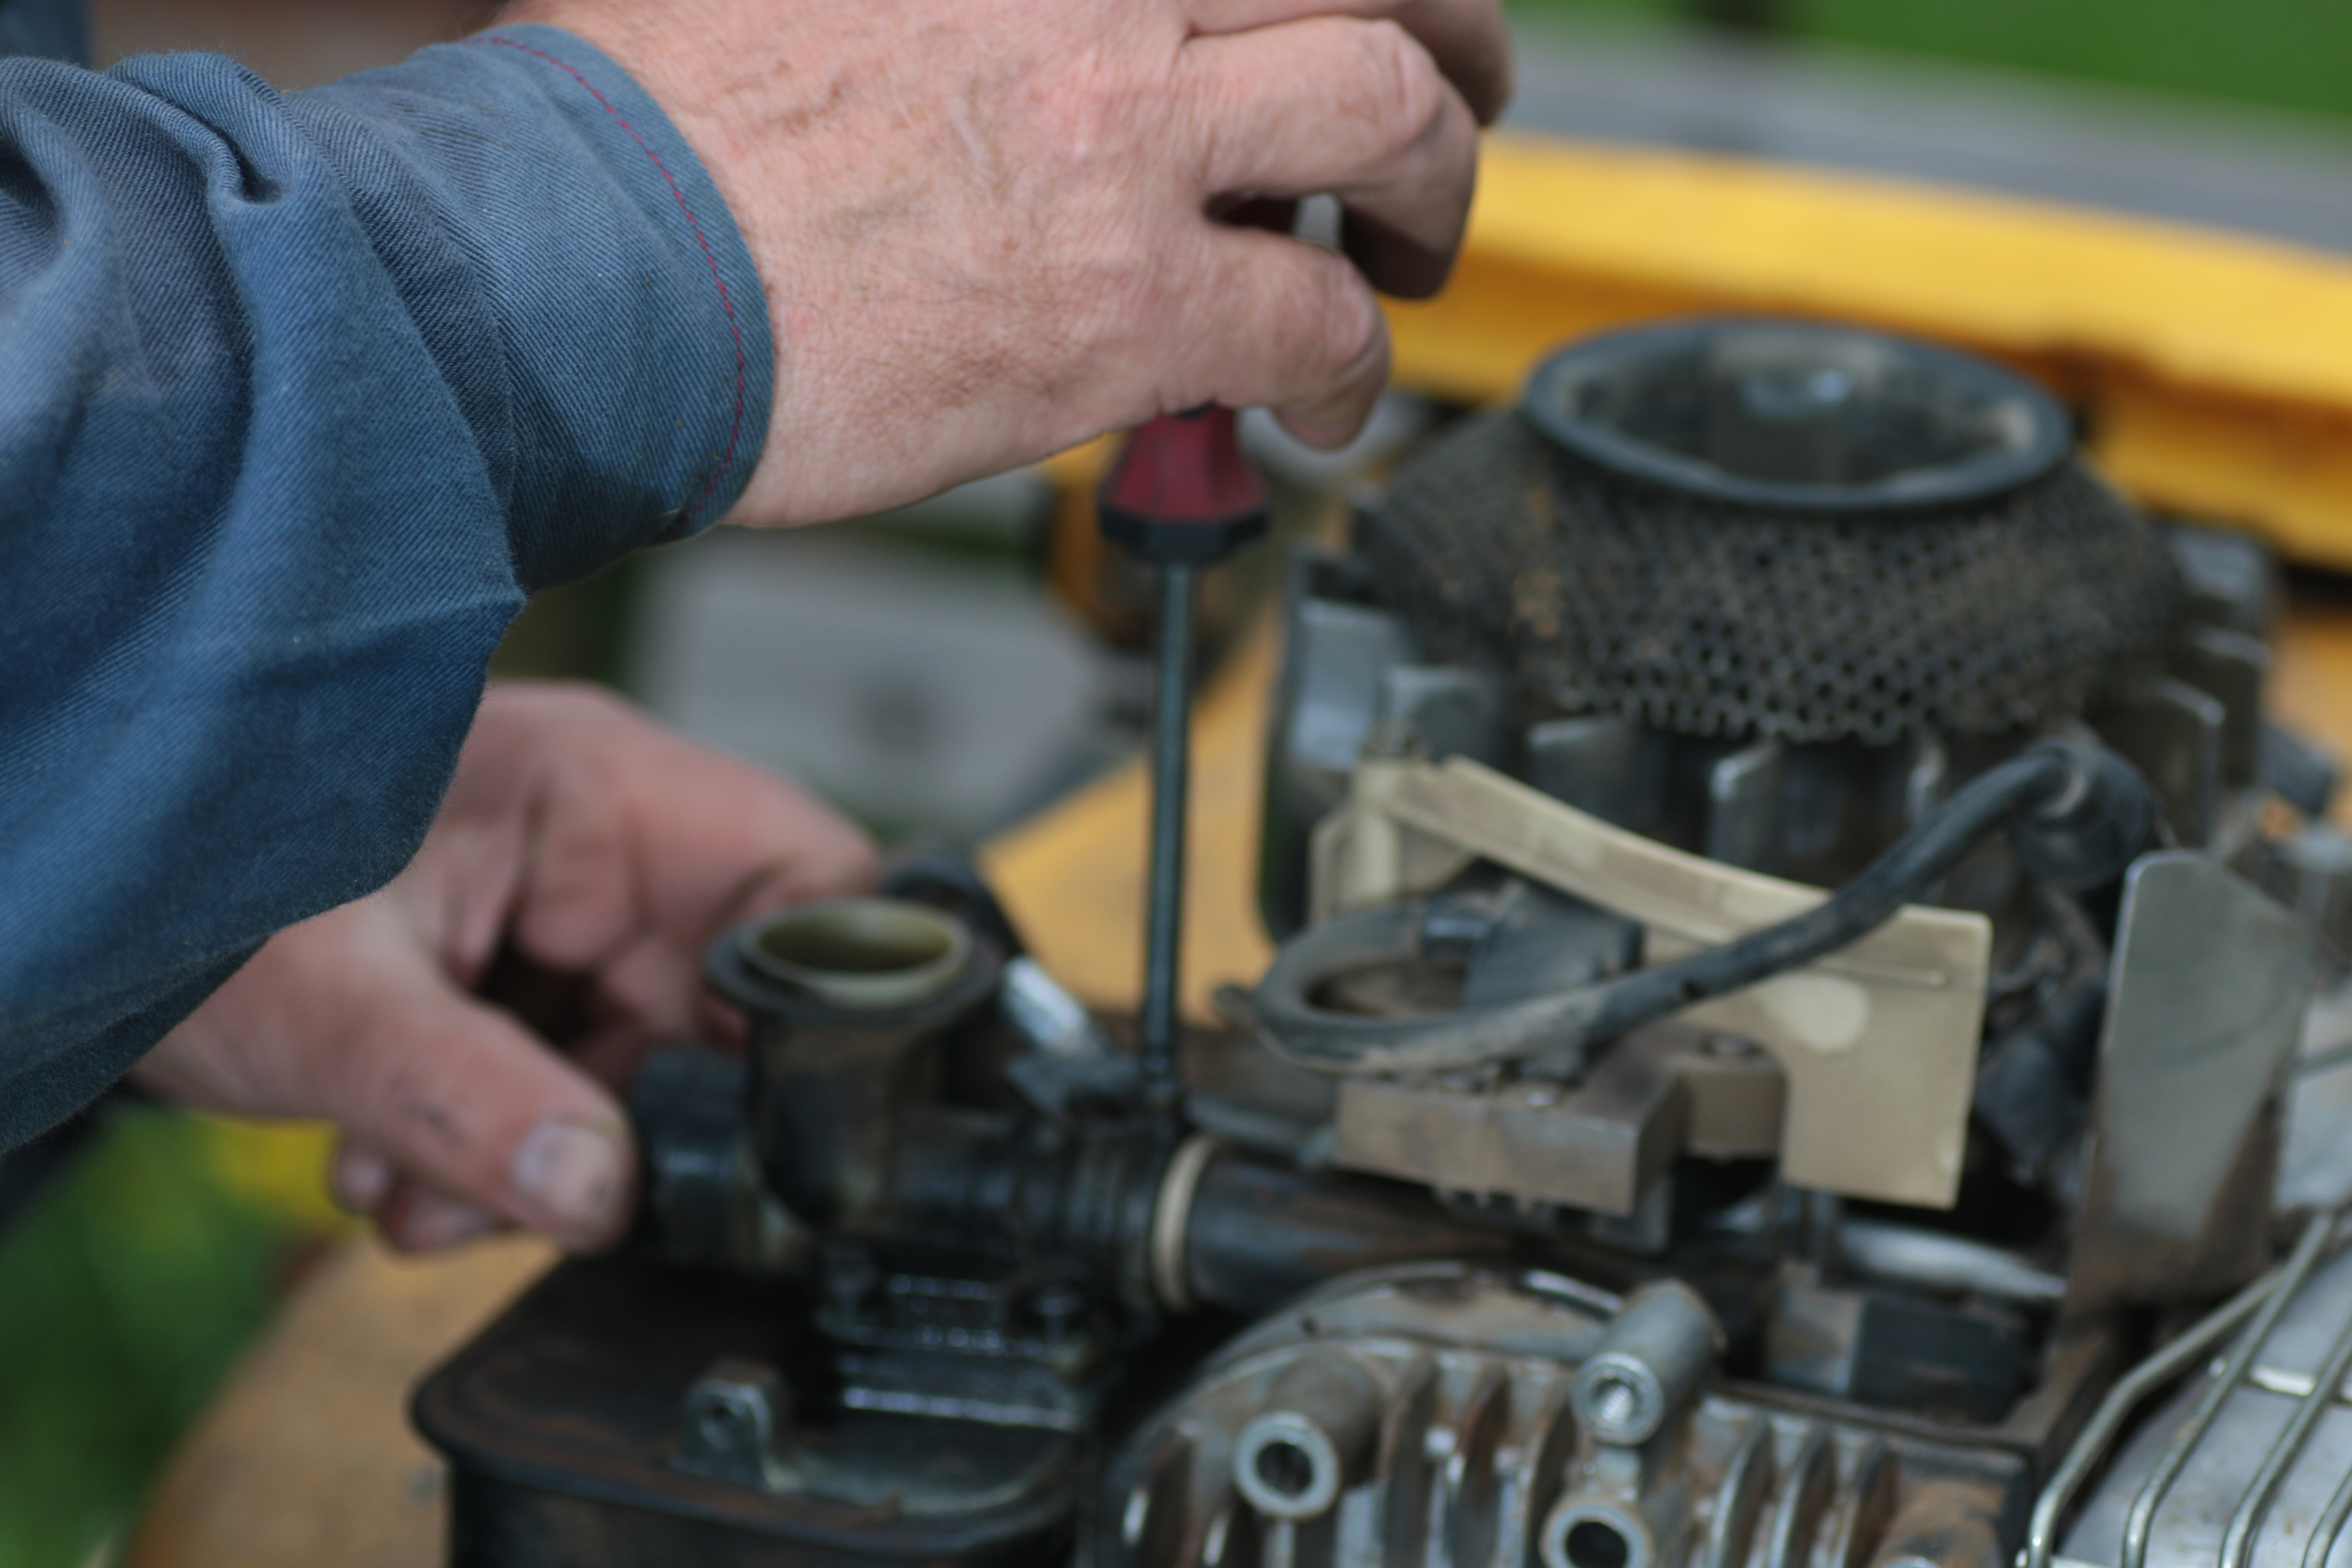 Repairing lawn mower engine